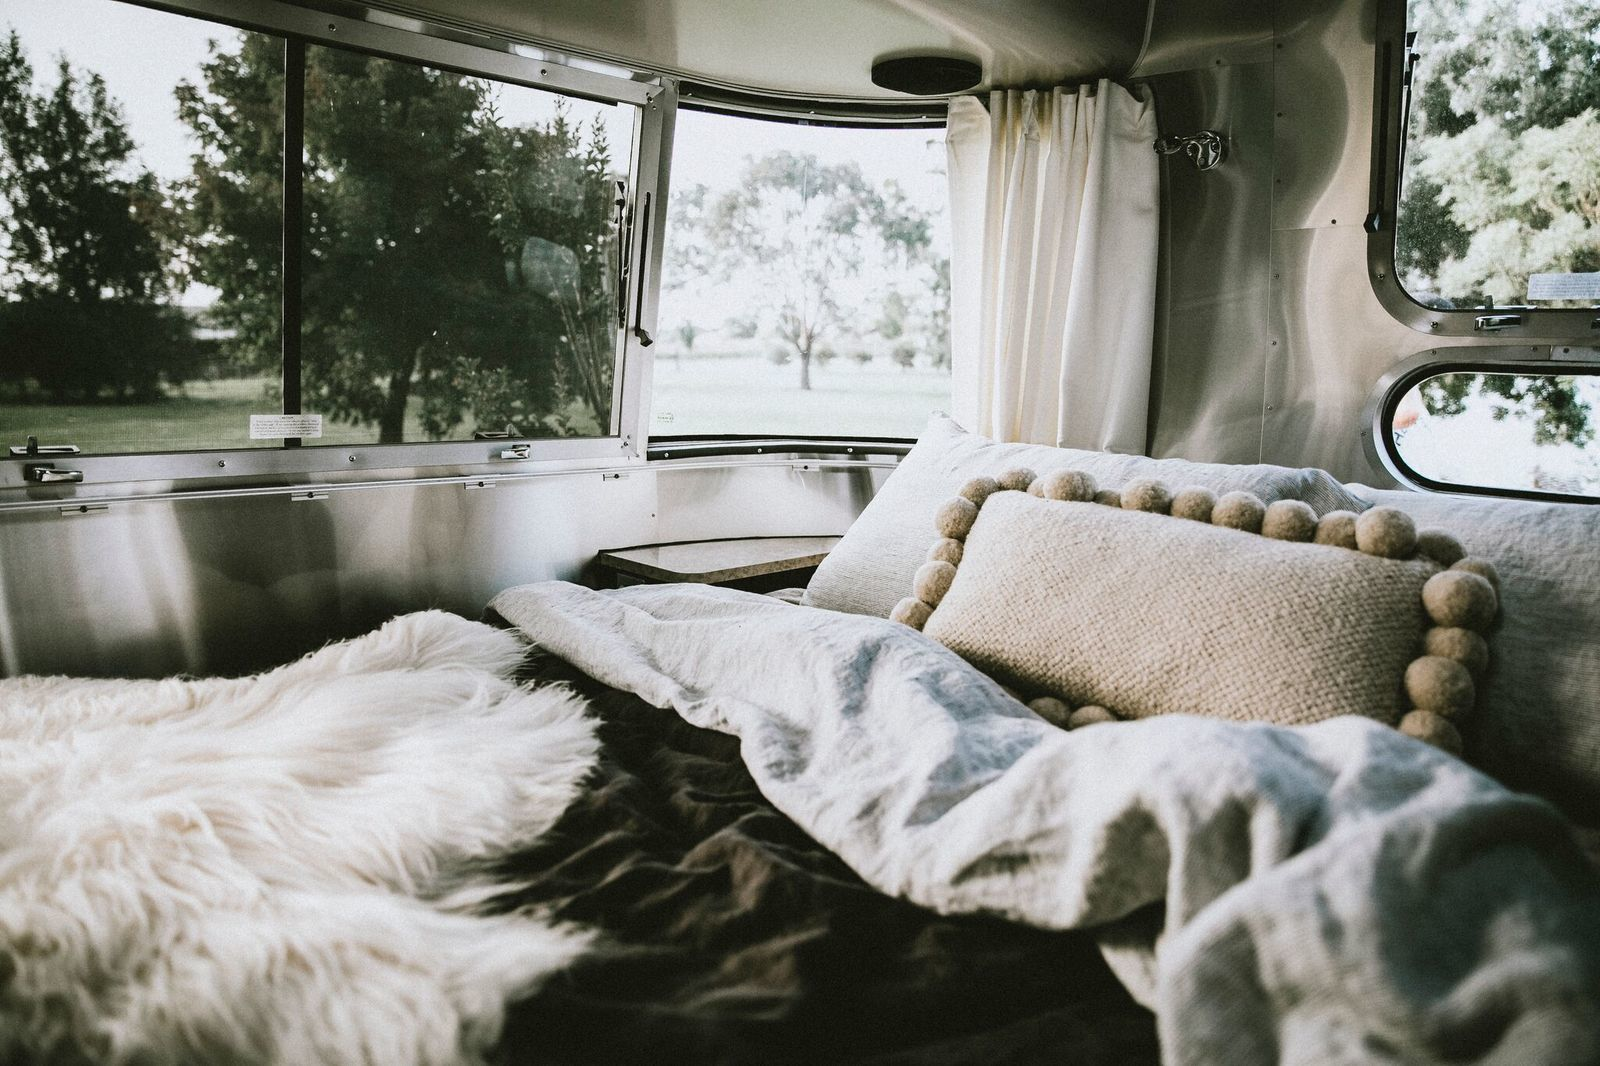 Interior of caravan with bed and windows